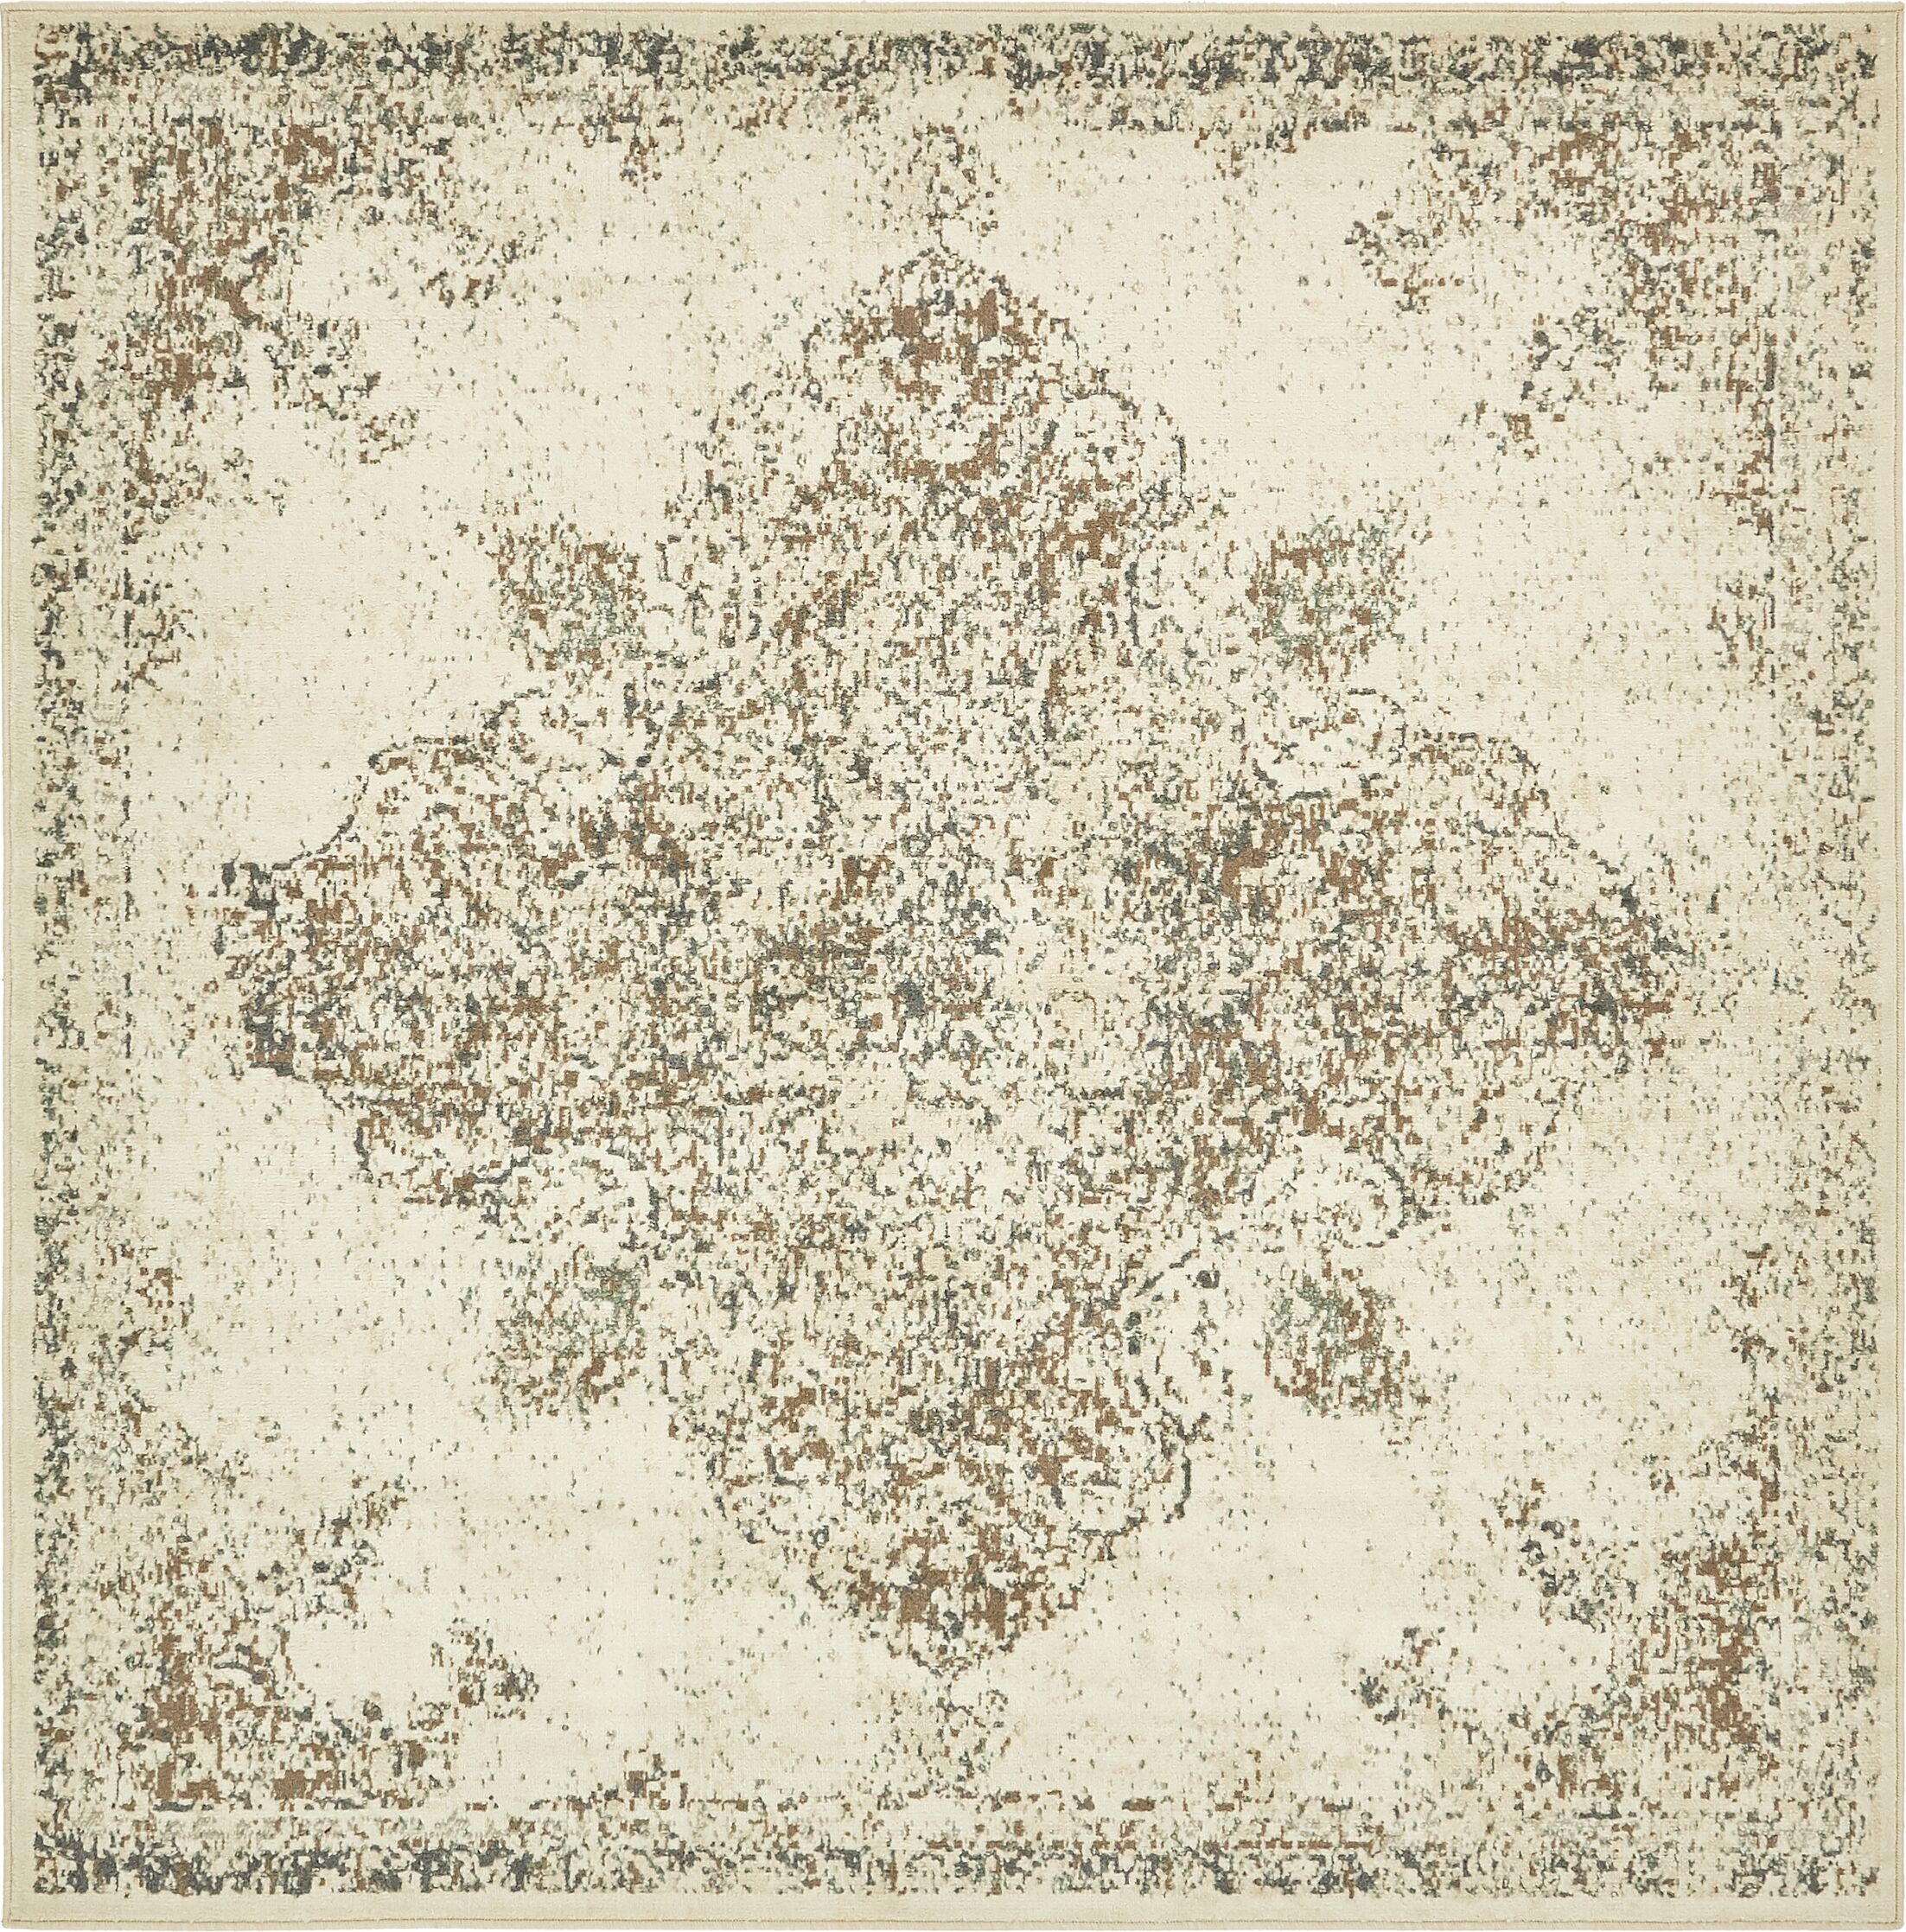 Forcalquier Rectangle Cream Area Rug Rug Size: Square 8'